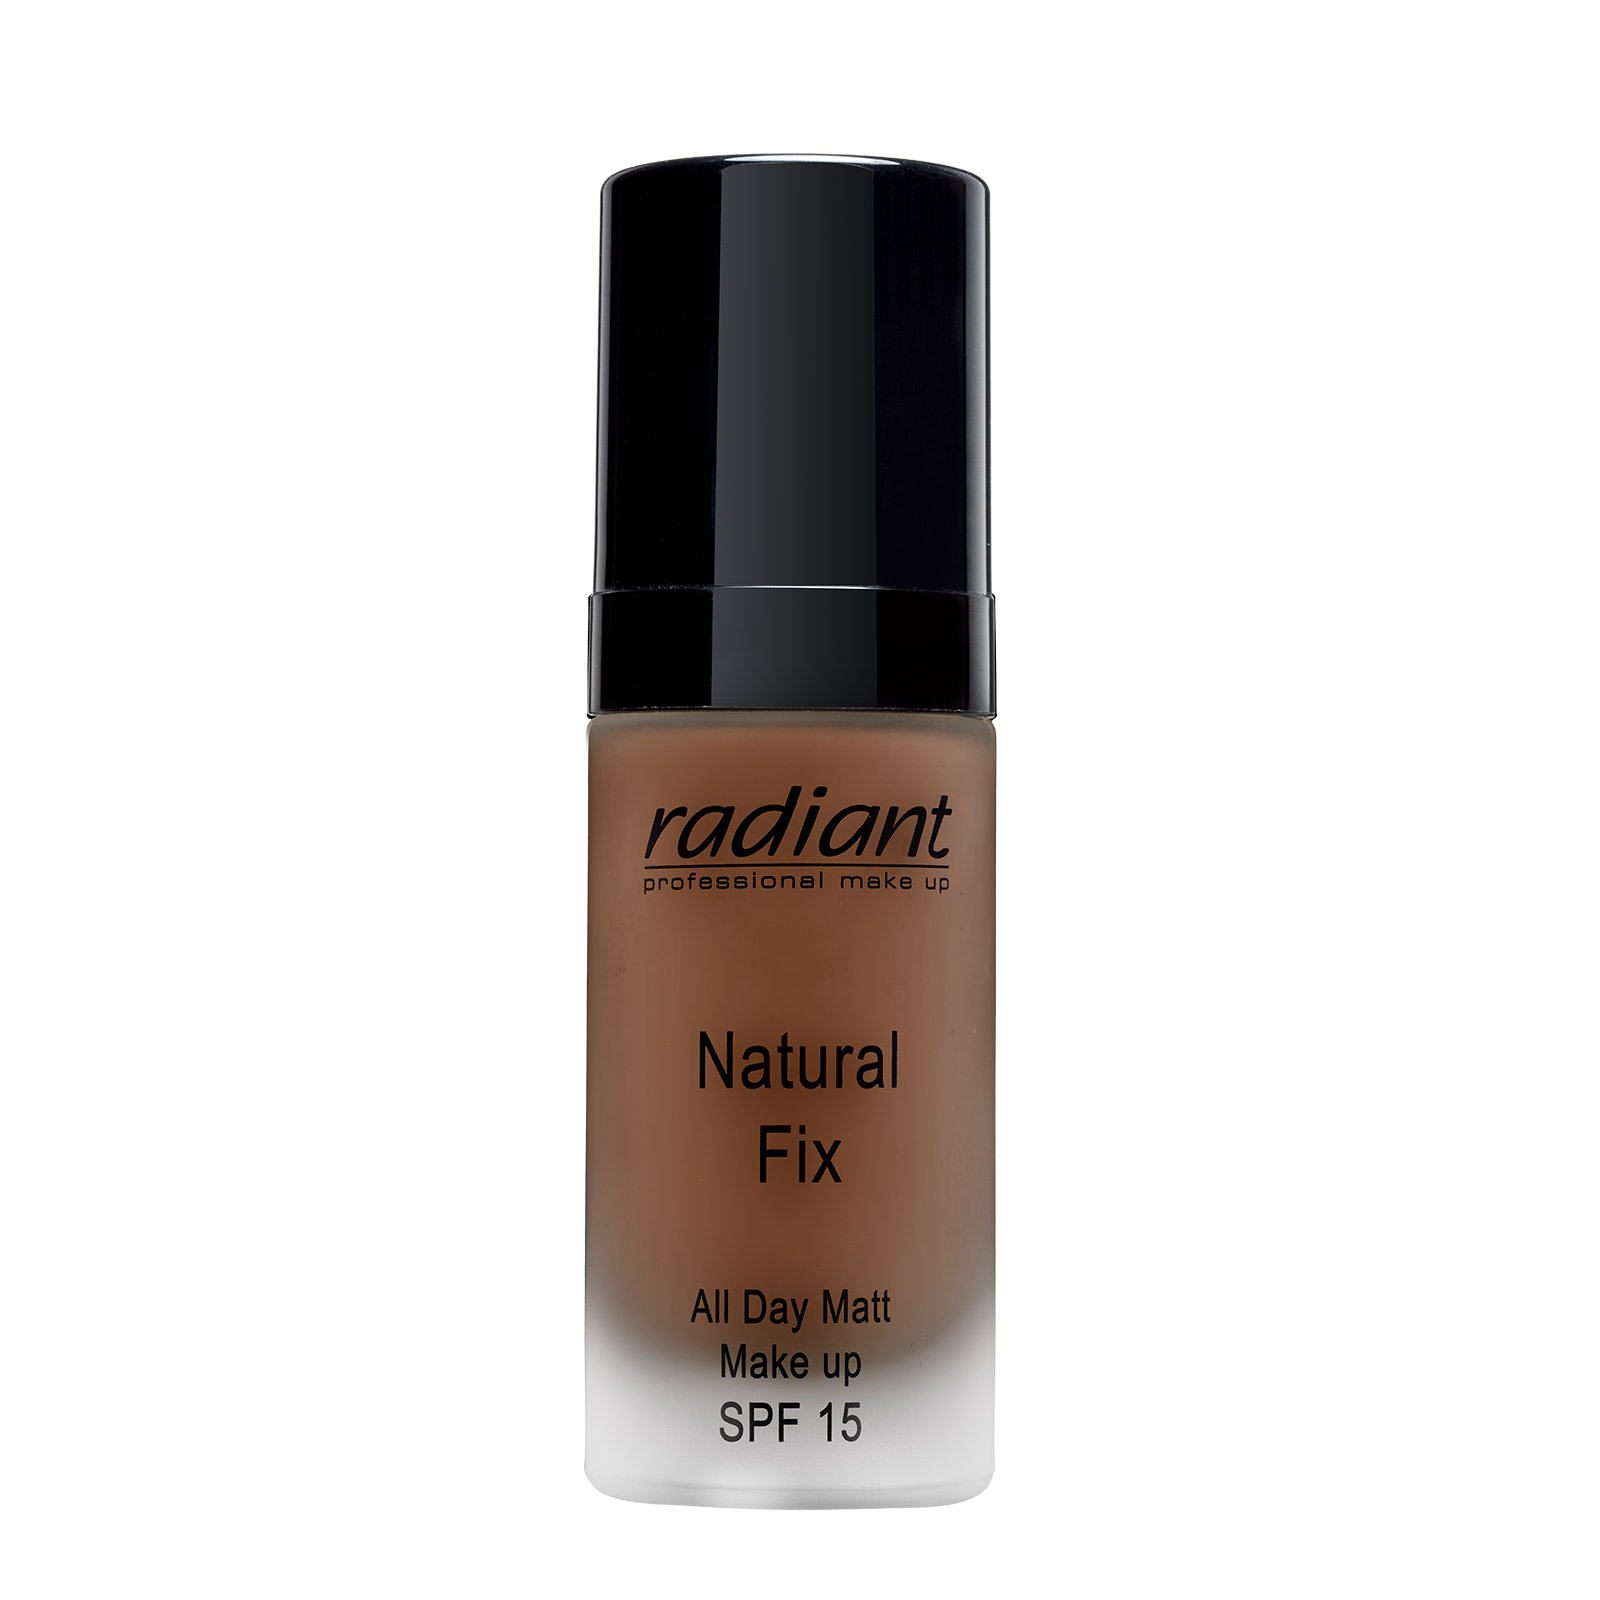 NATURAL FIX ALL DAY MATT MAKE UP SPF 15 (11 Dark Chocolate)